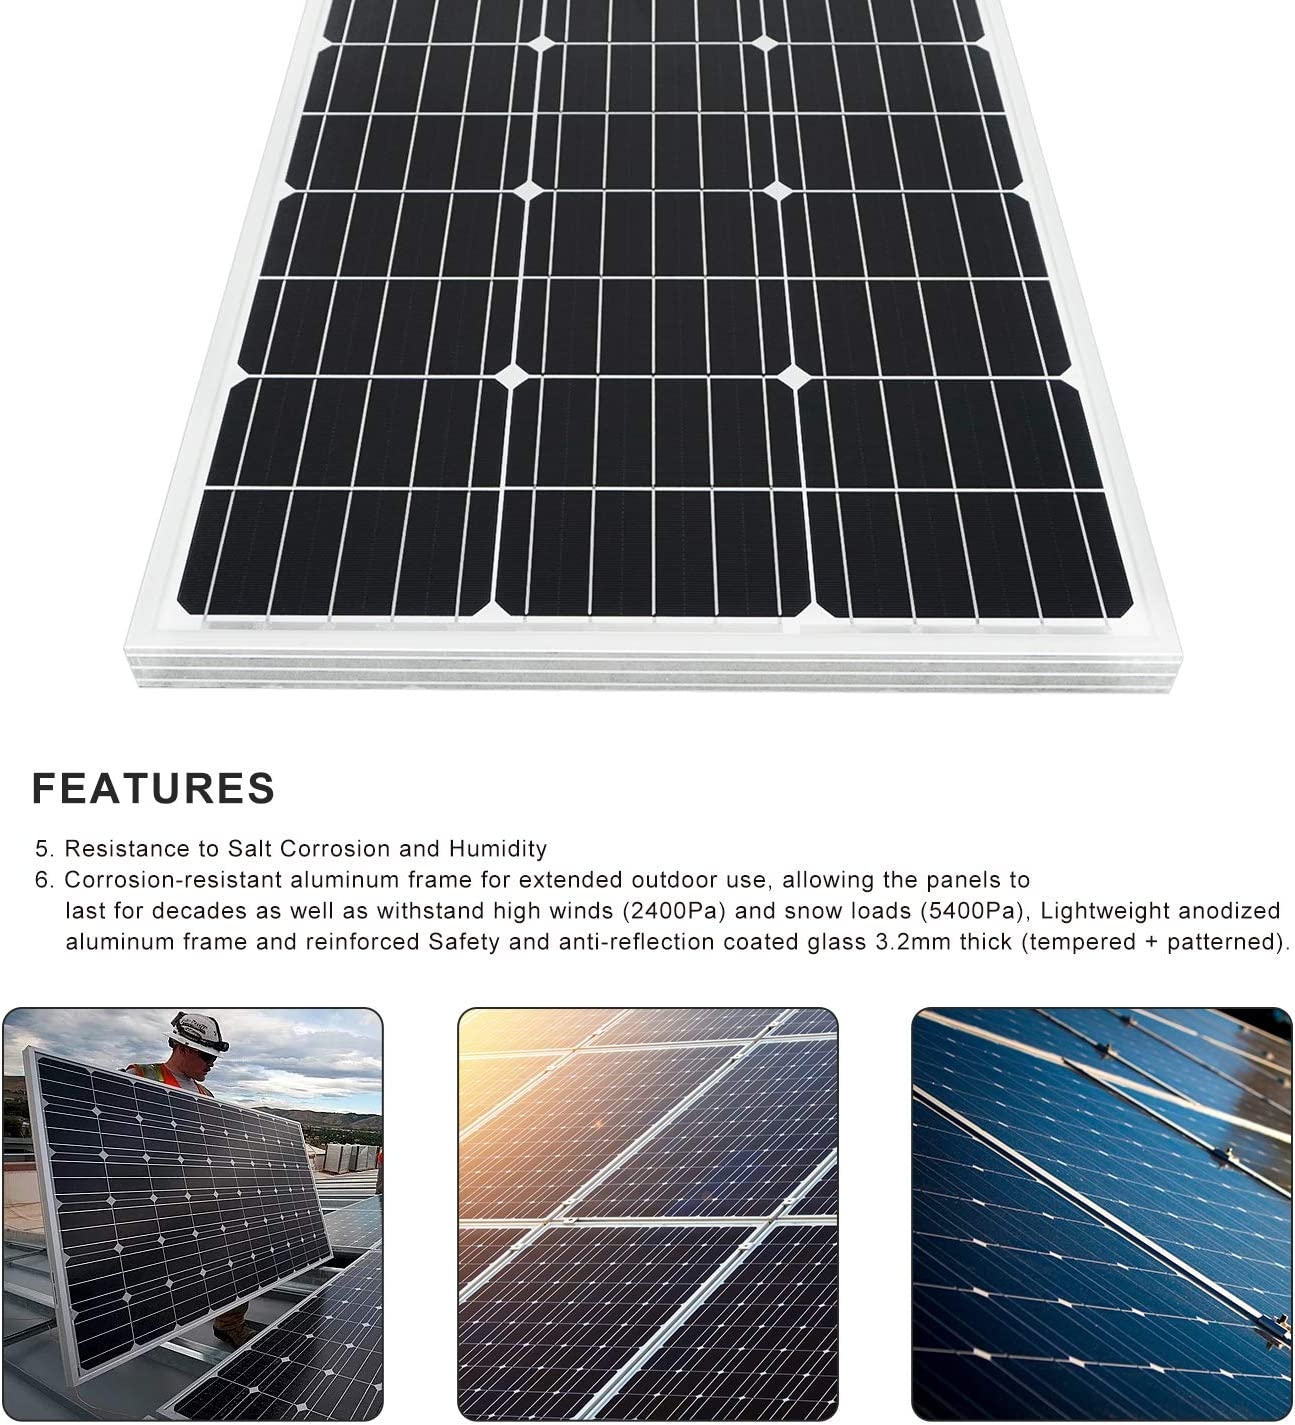 Controller Irrigation 2pc 100W Poly Solar Panel ECO-WORTHY 24V Deep Well Stainless Steel Water Pump